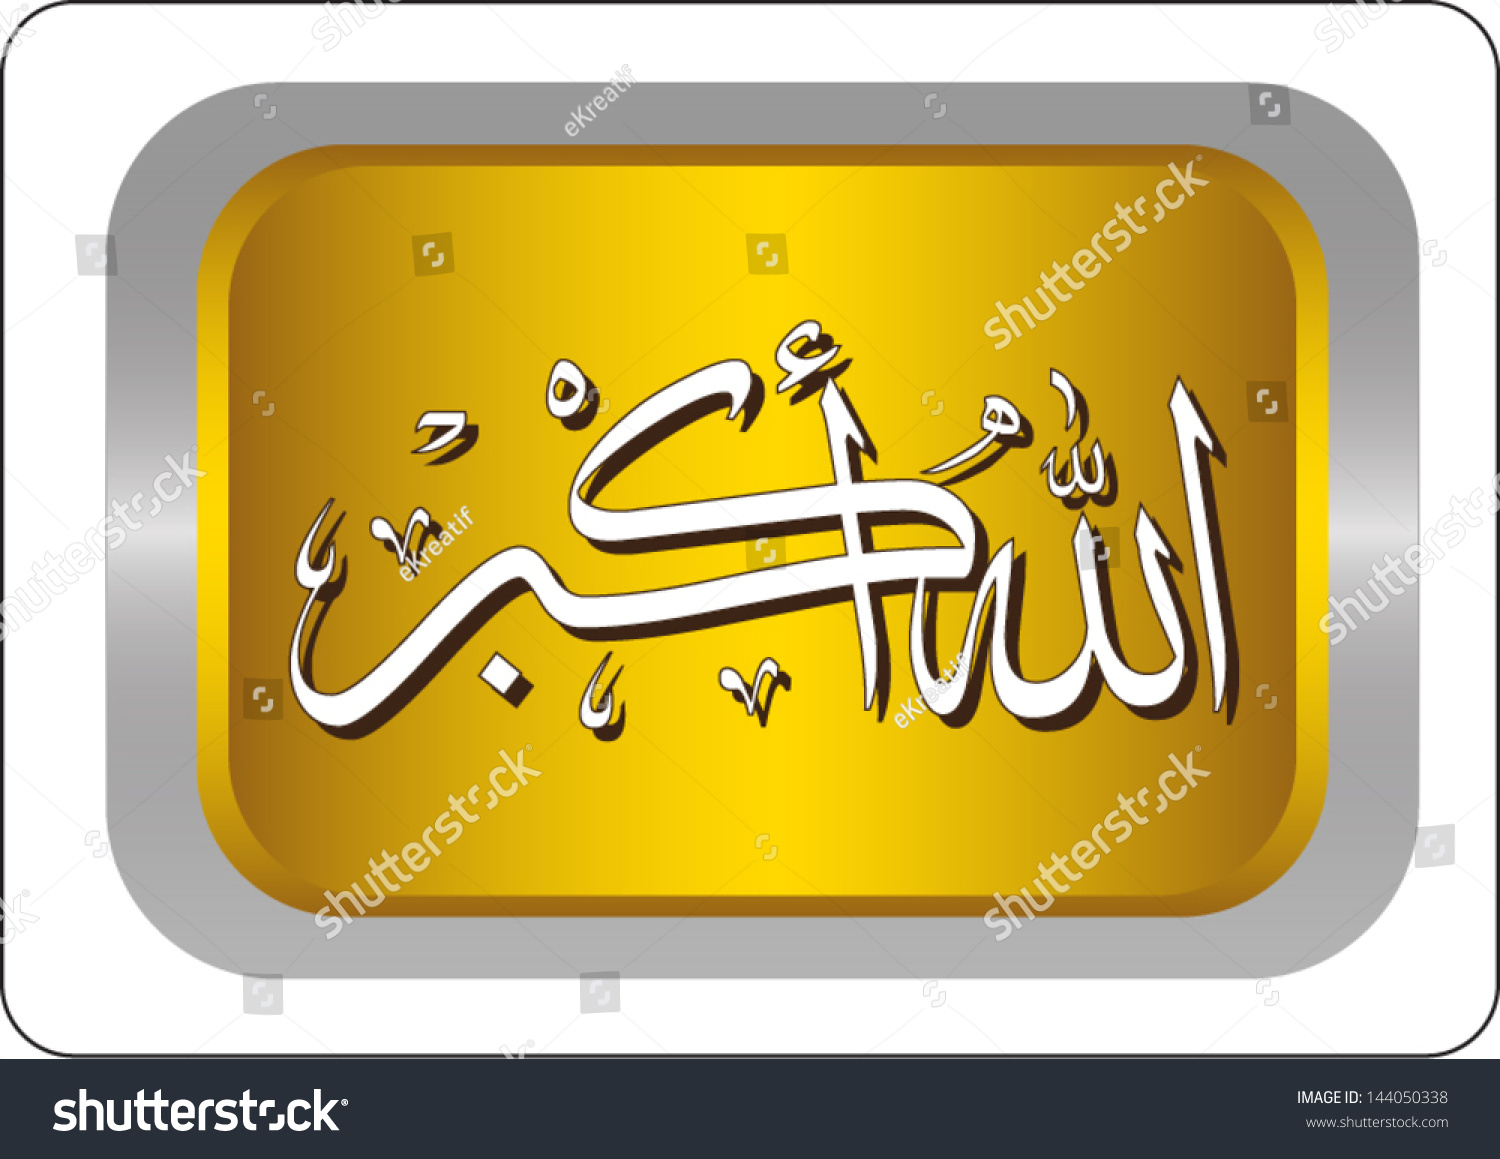 The meaning and usage of the phrase allahu akbar